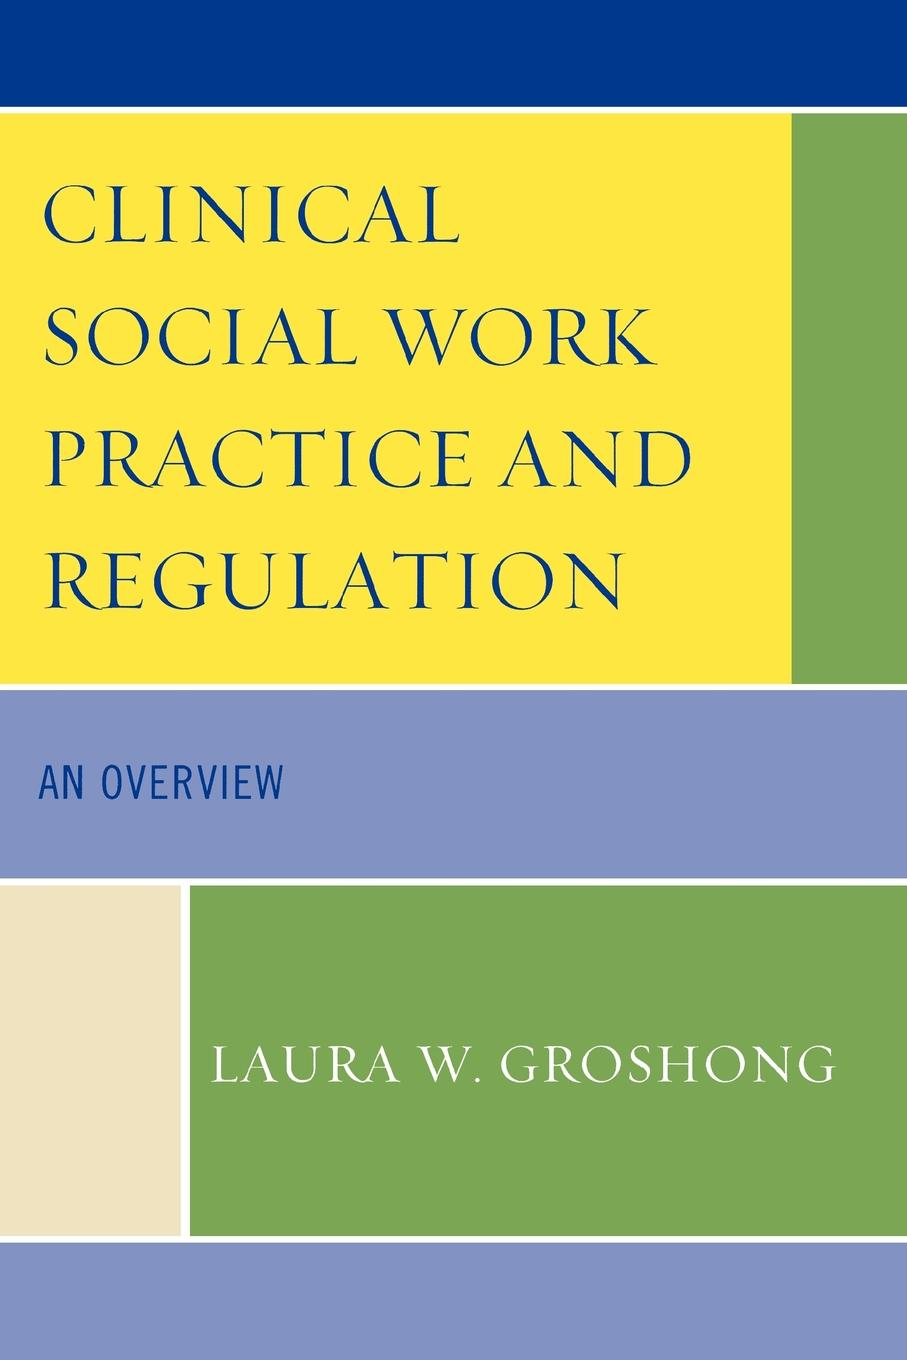 Clinical Social Work Practice and Regulation By: Laura W. Groshong